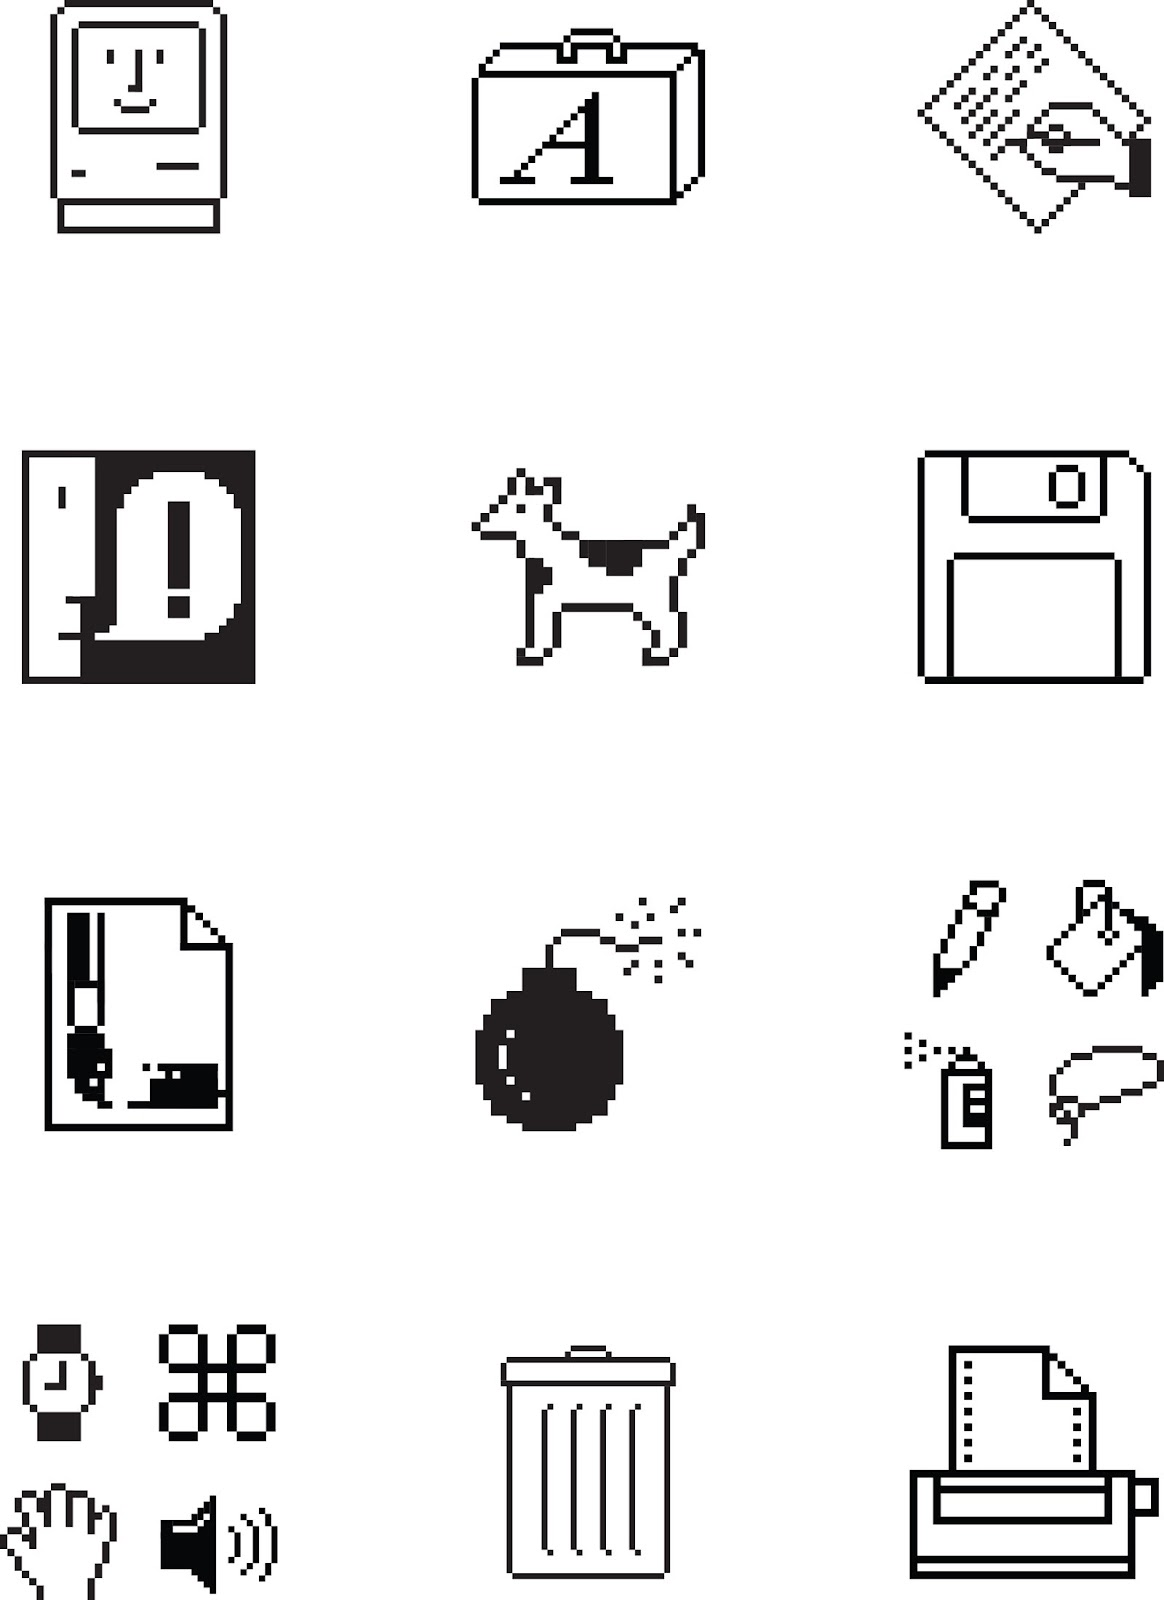 Graphic icons created by Susan Kare for Macintosh computers.